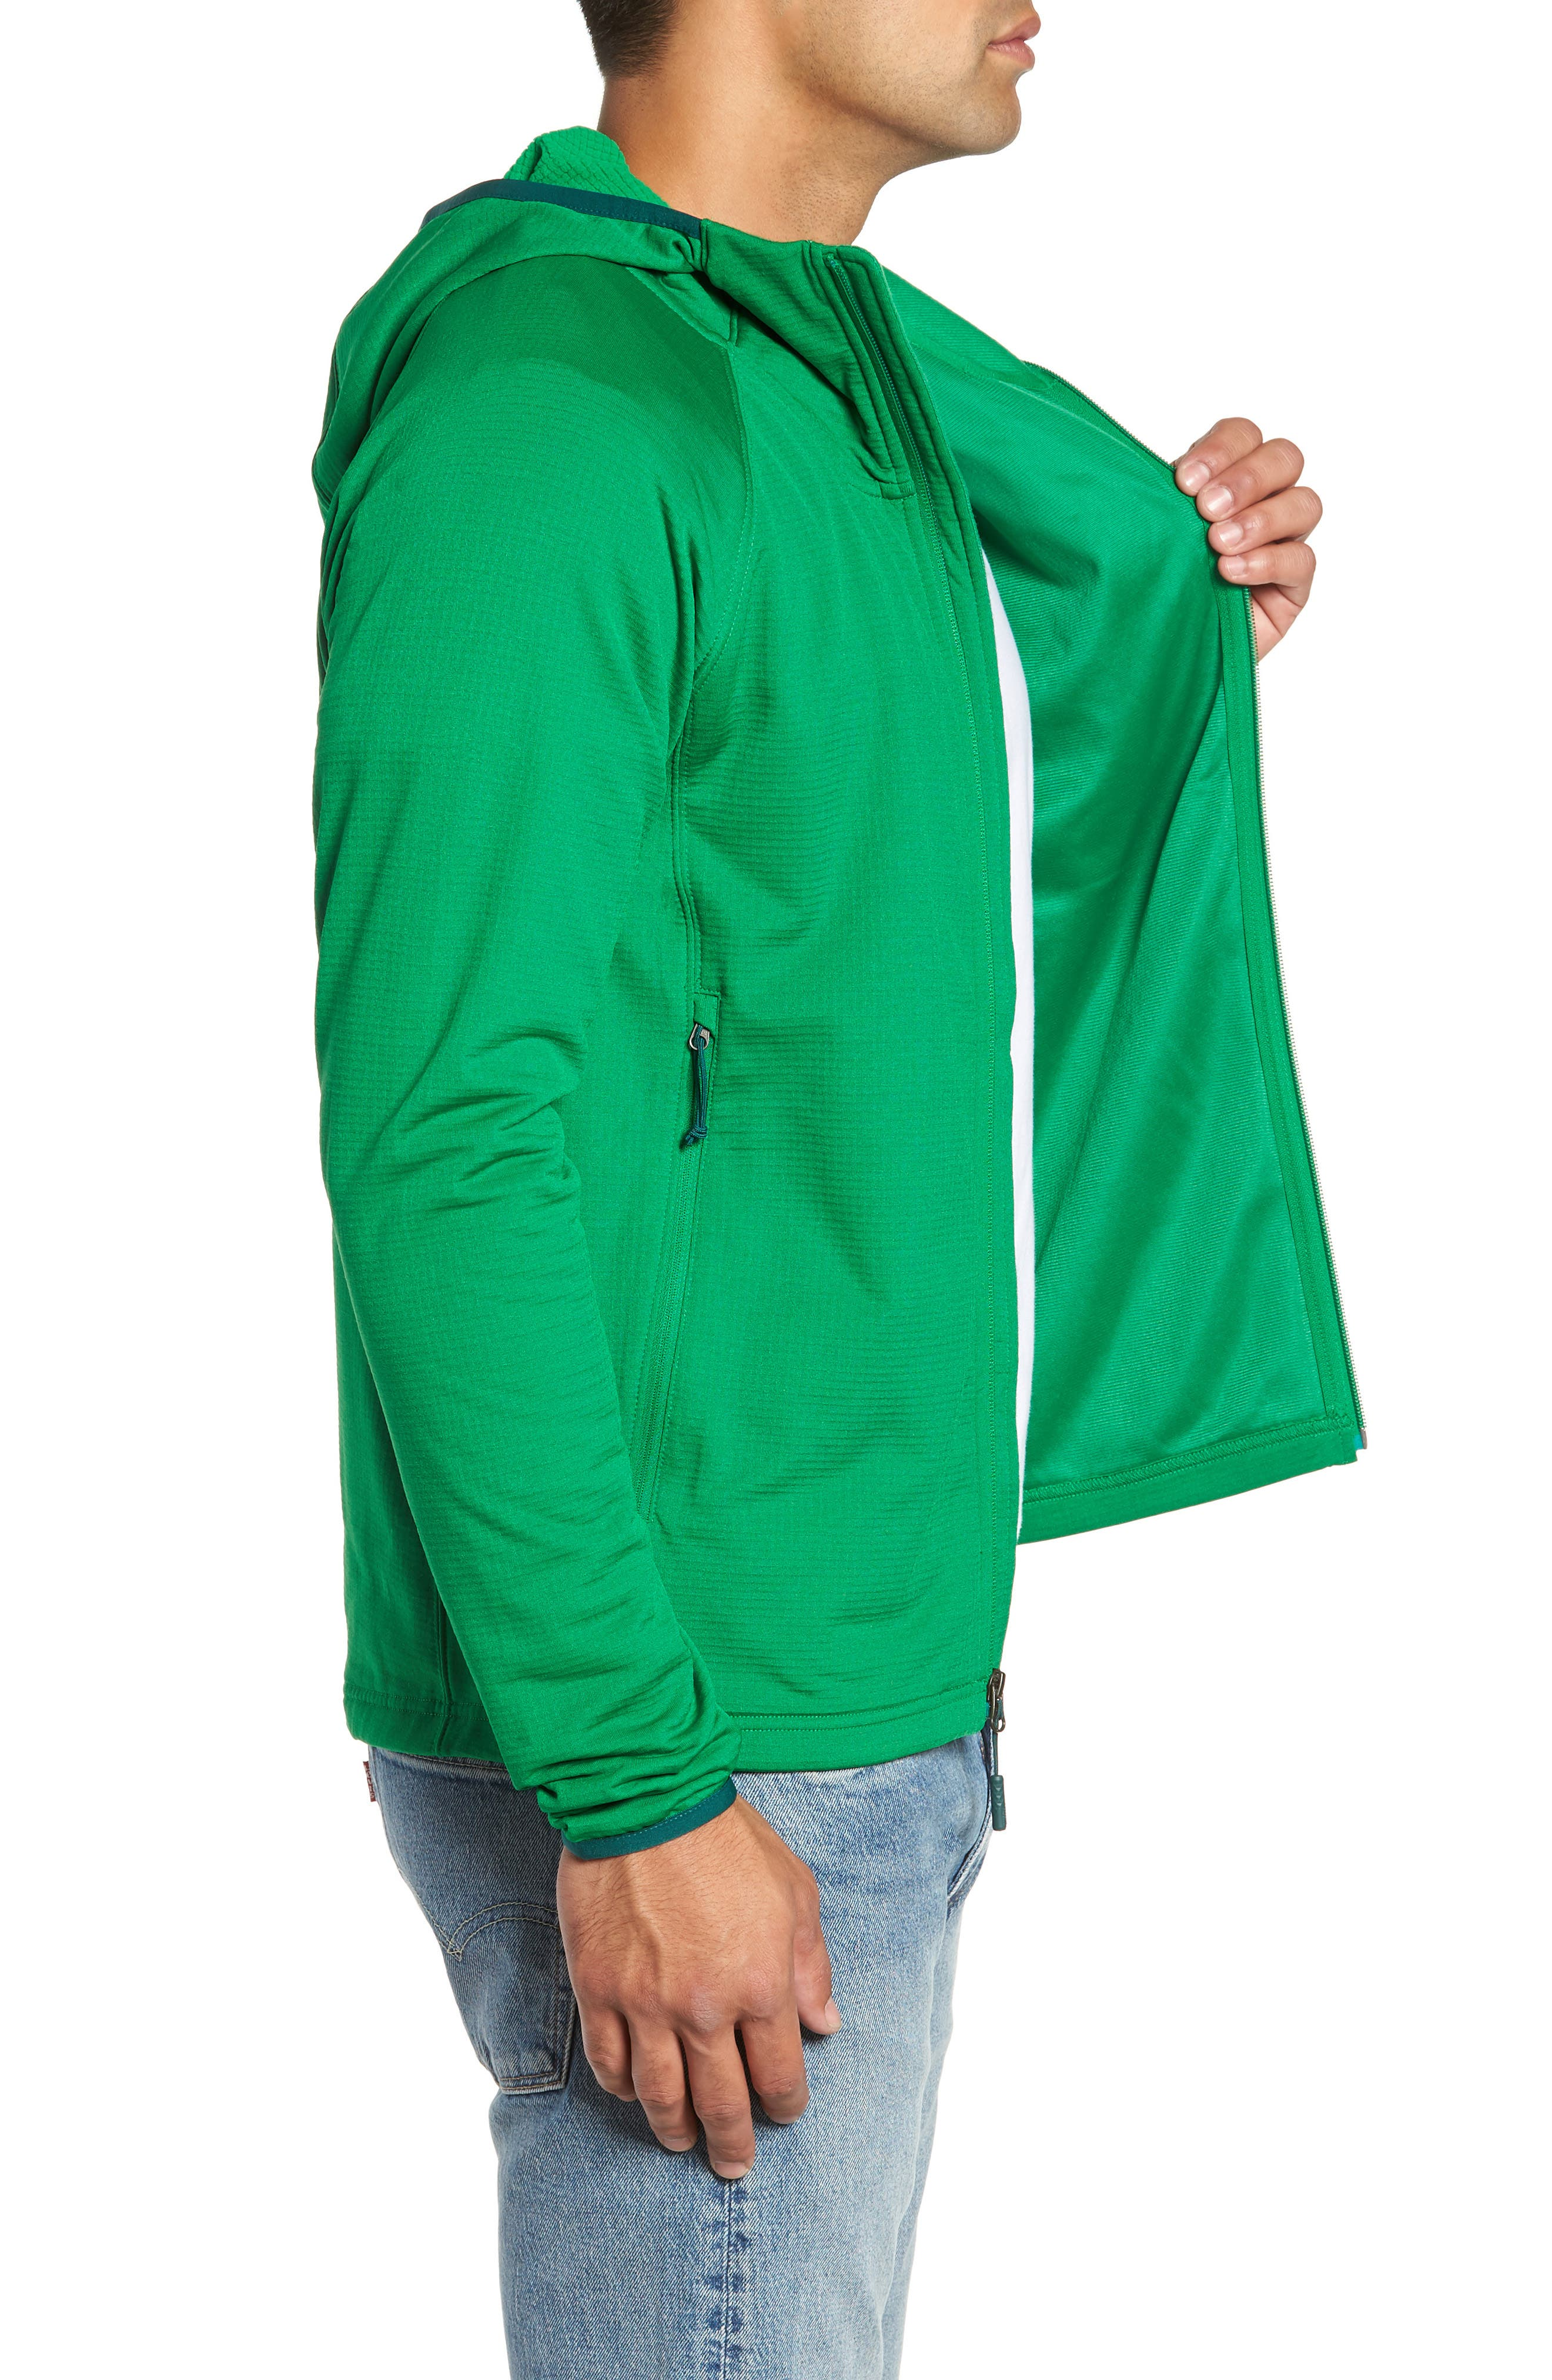 THE NORTH FACE, Borod Zip Fleece Jacket, Alternate thumbnail 3, color, 301